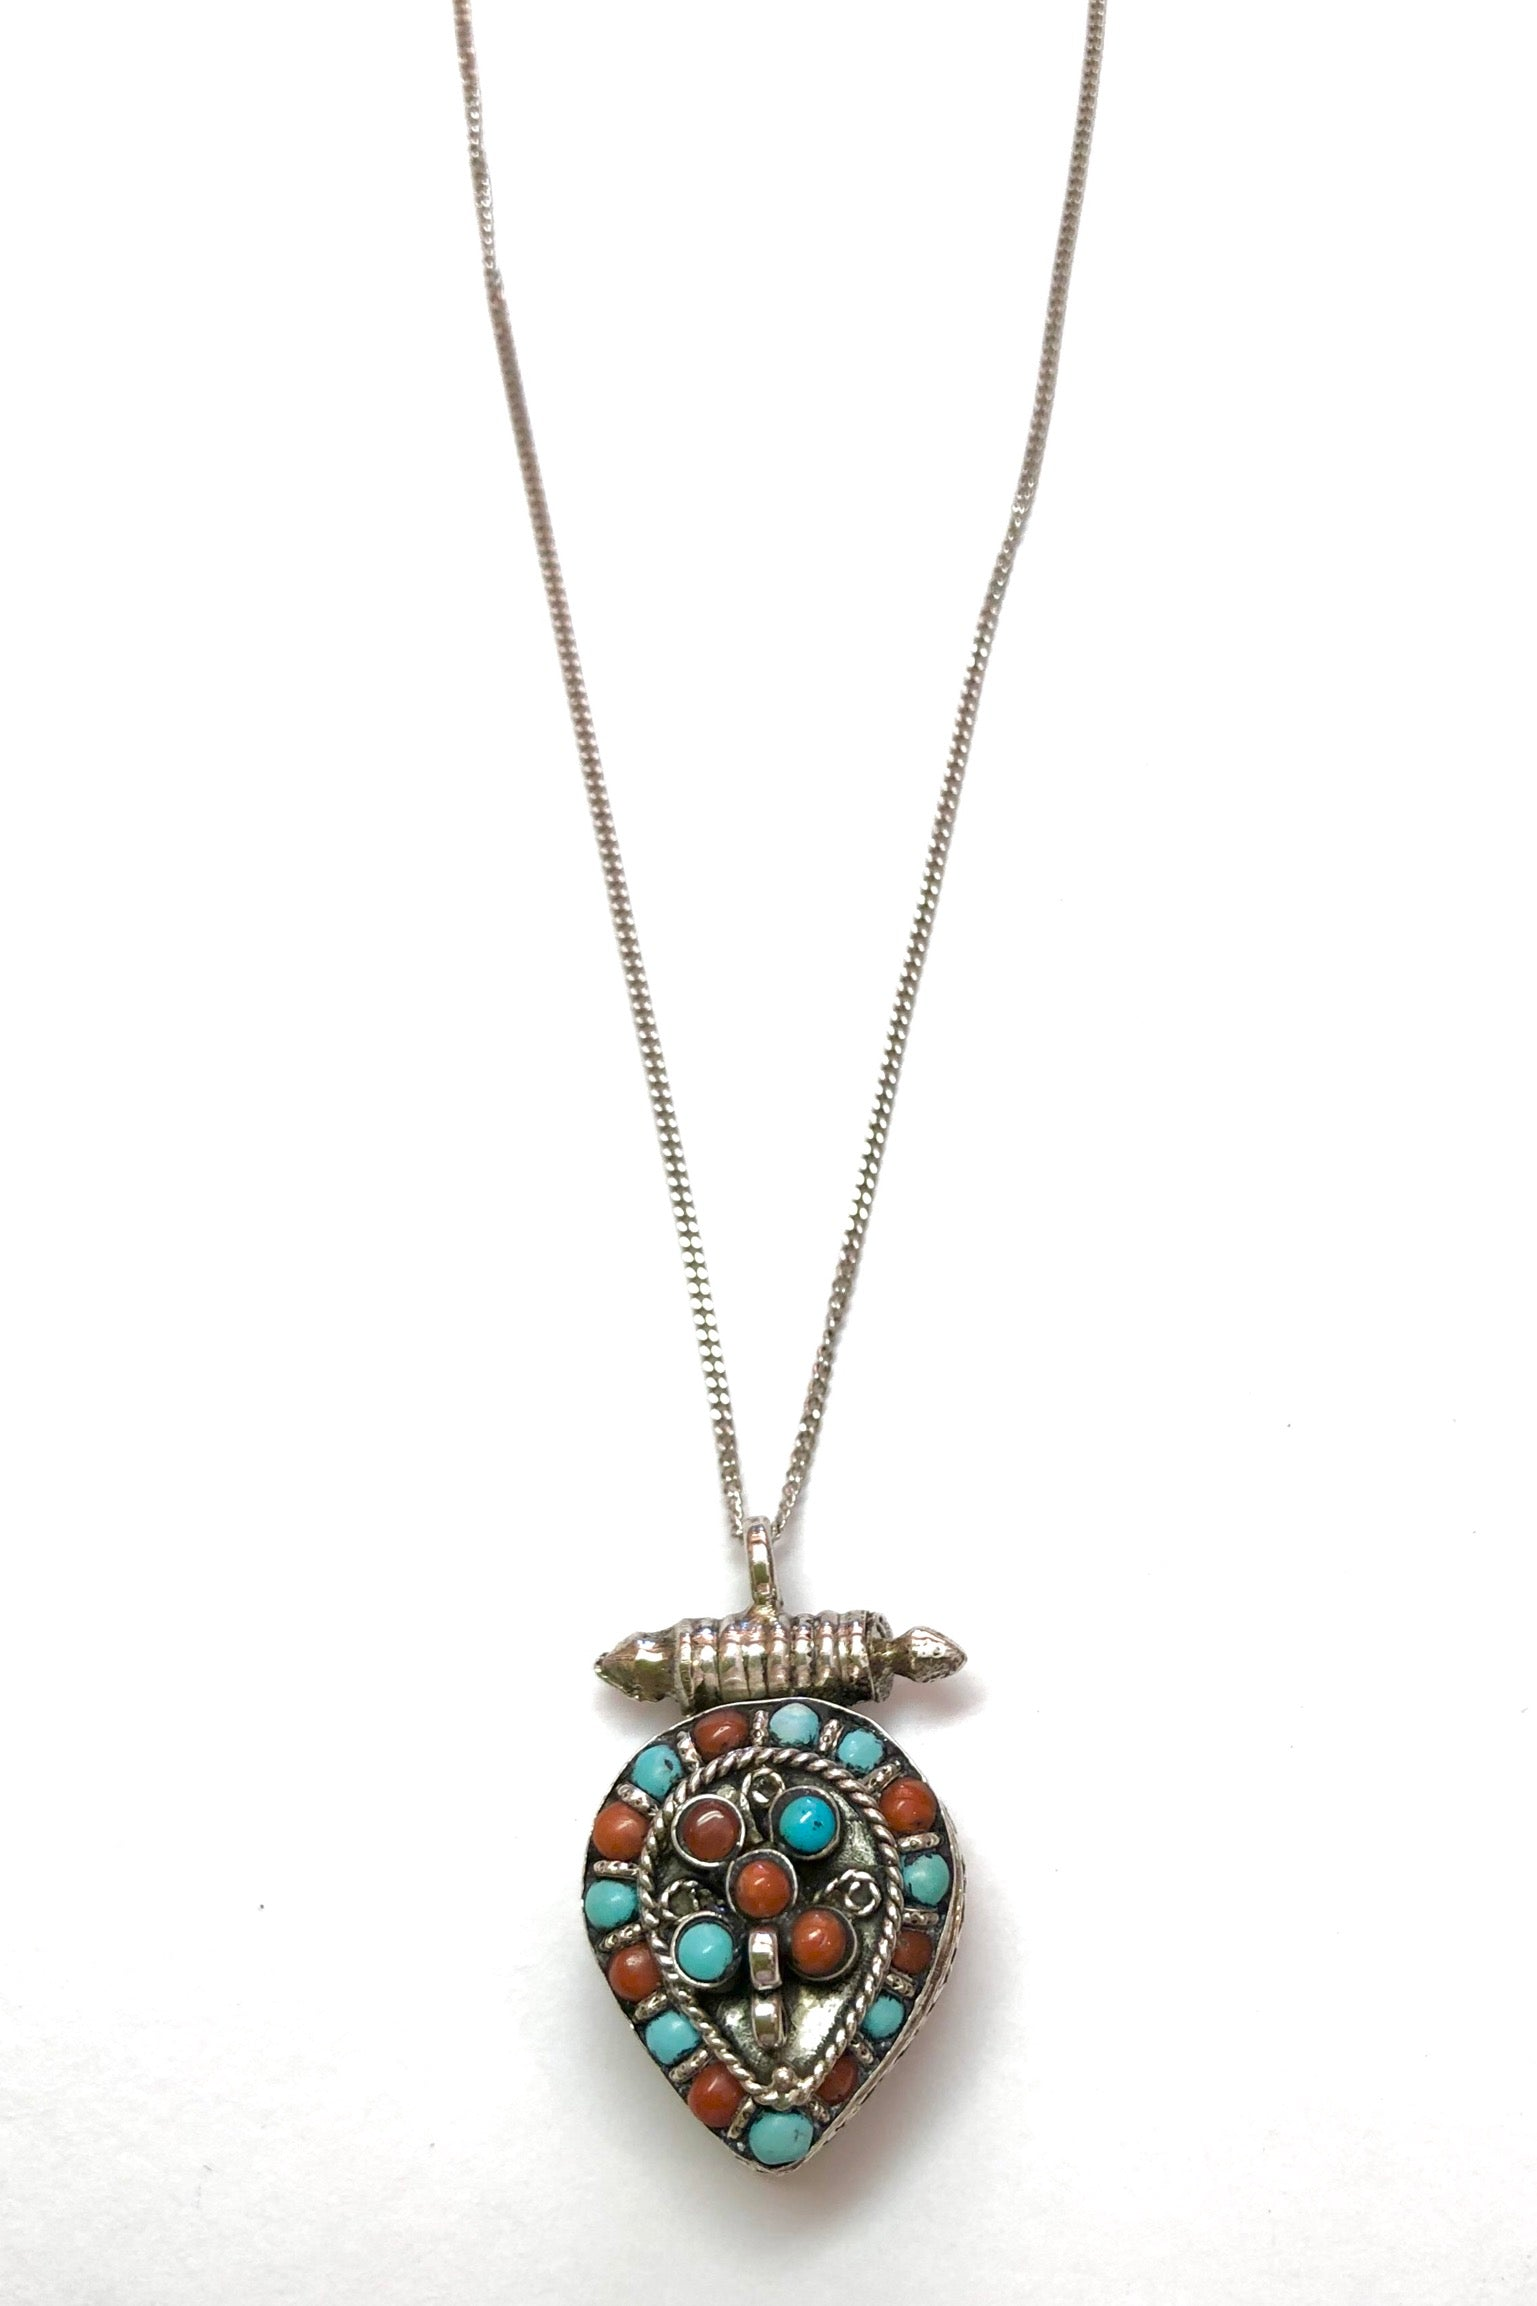 Echo Box Pendant Silver with Turquoise and Coral is a 925 silver box pendant featuring natural turquoise and coral applied.